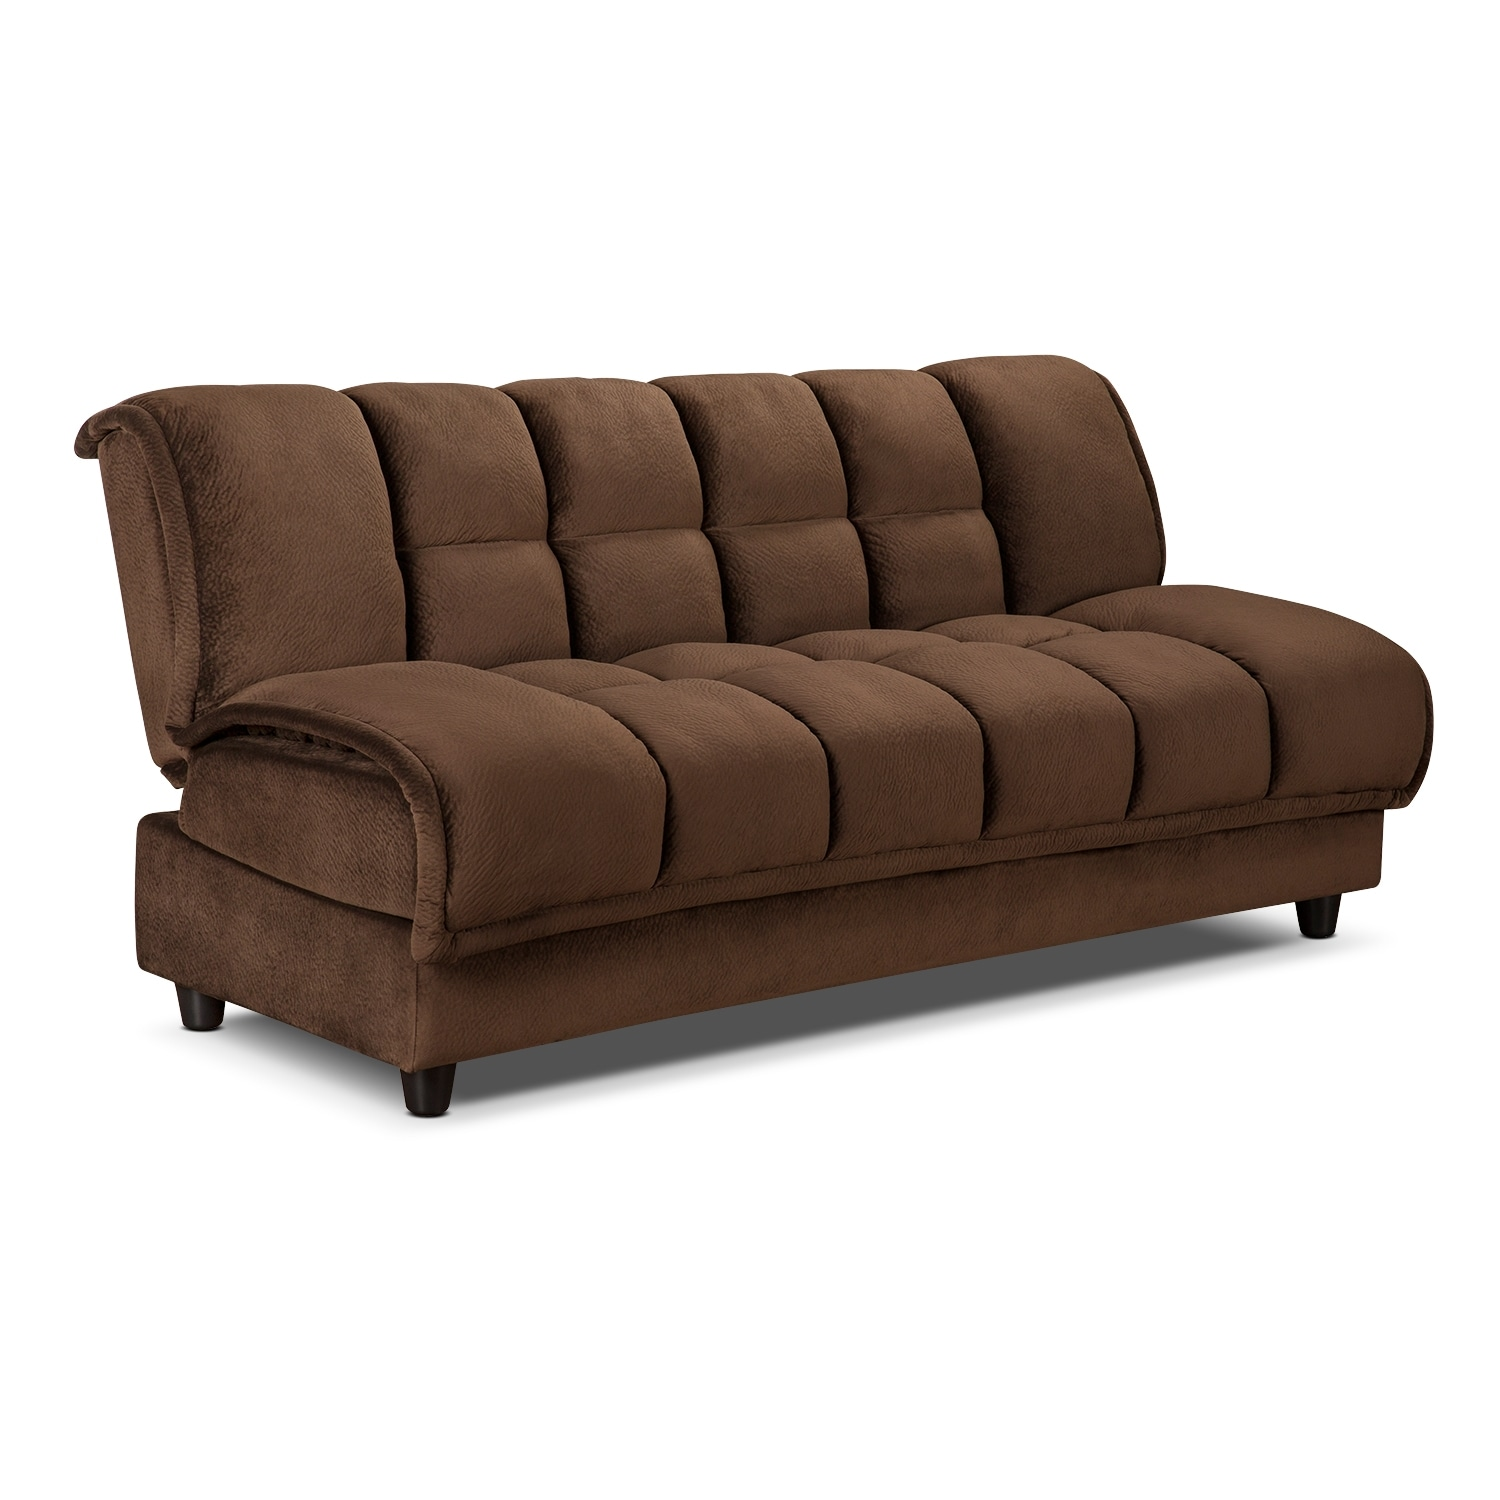 Bennett futon sofa bed espresso american signature for Sofa bed futon